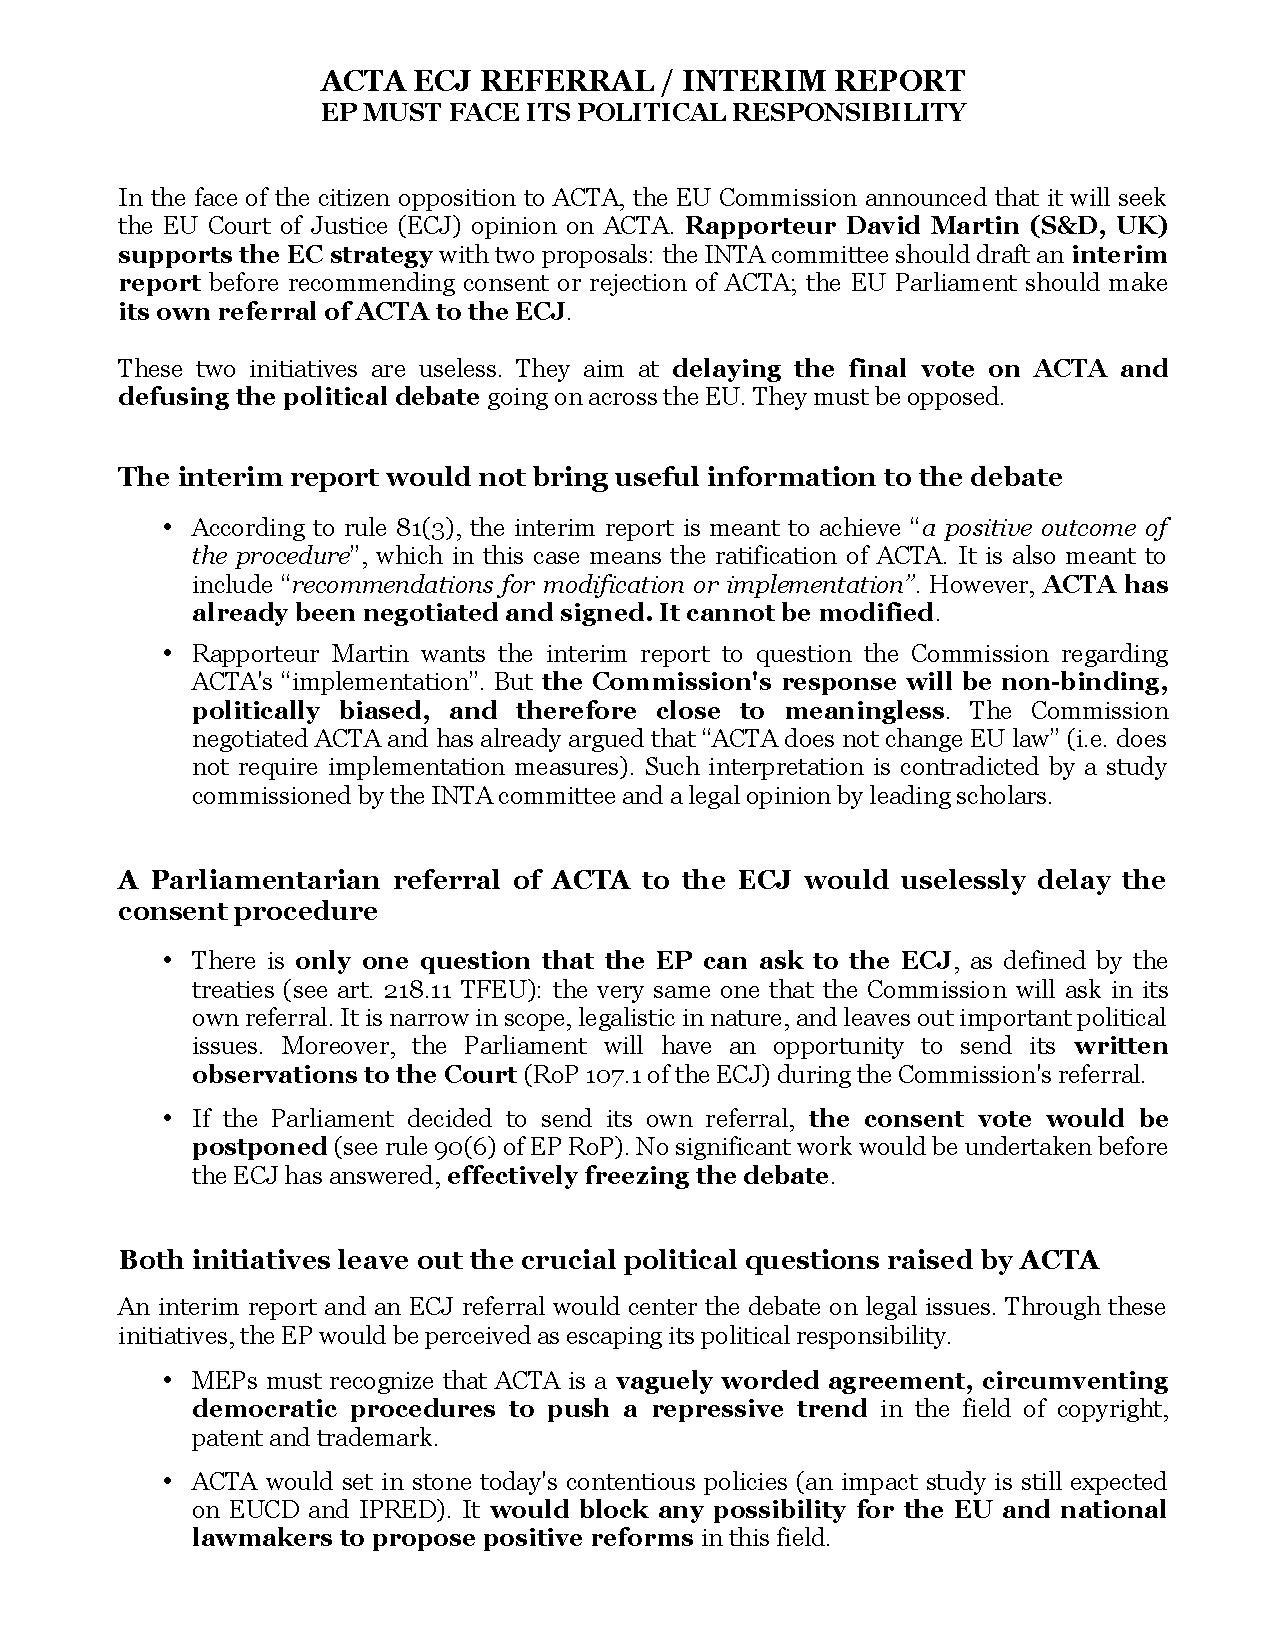 20120323 ACTA EC Referral Interim Report.pdf